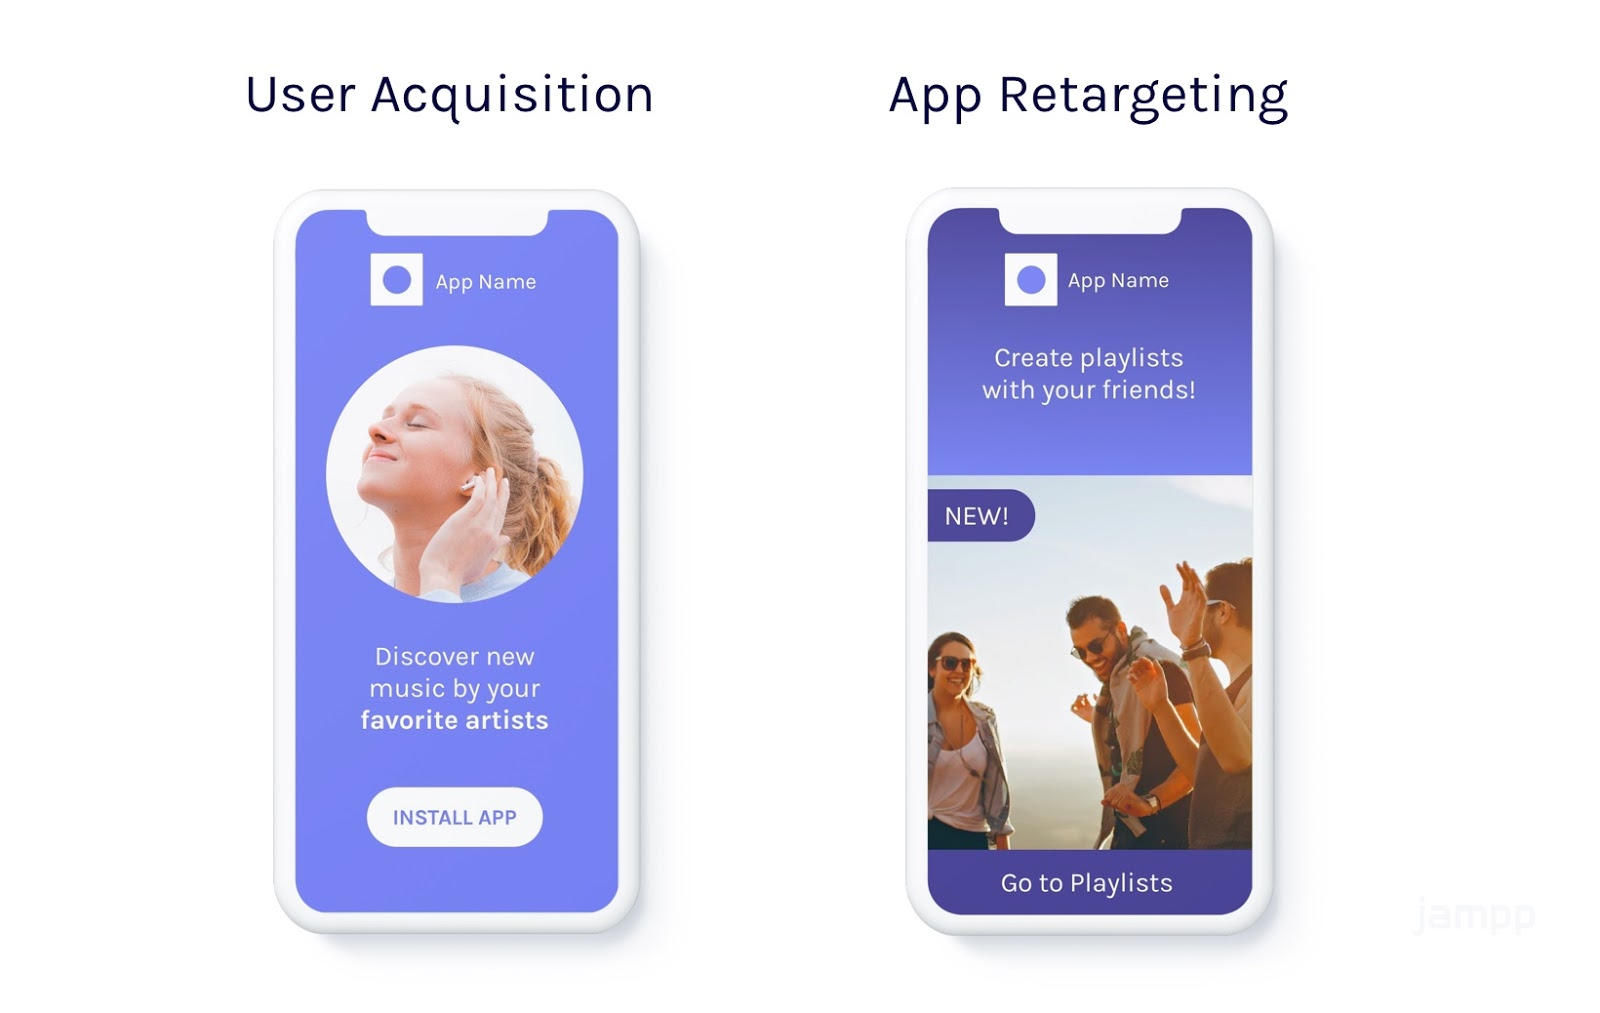 User Acquisition ad and App retargeting add